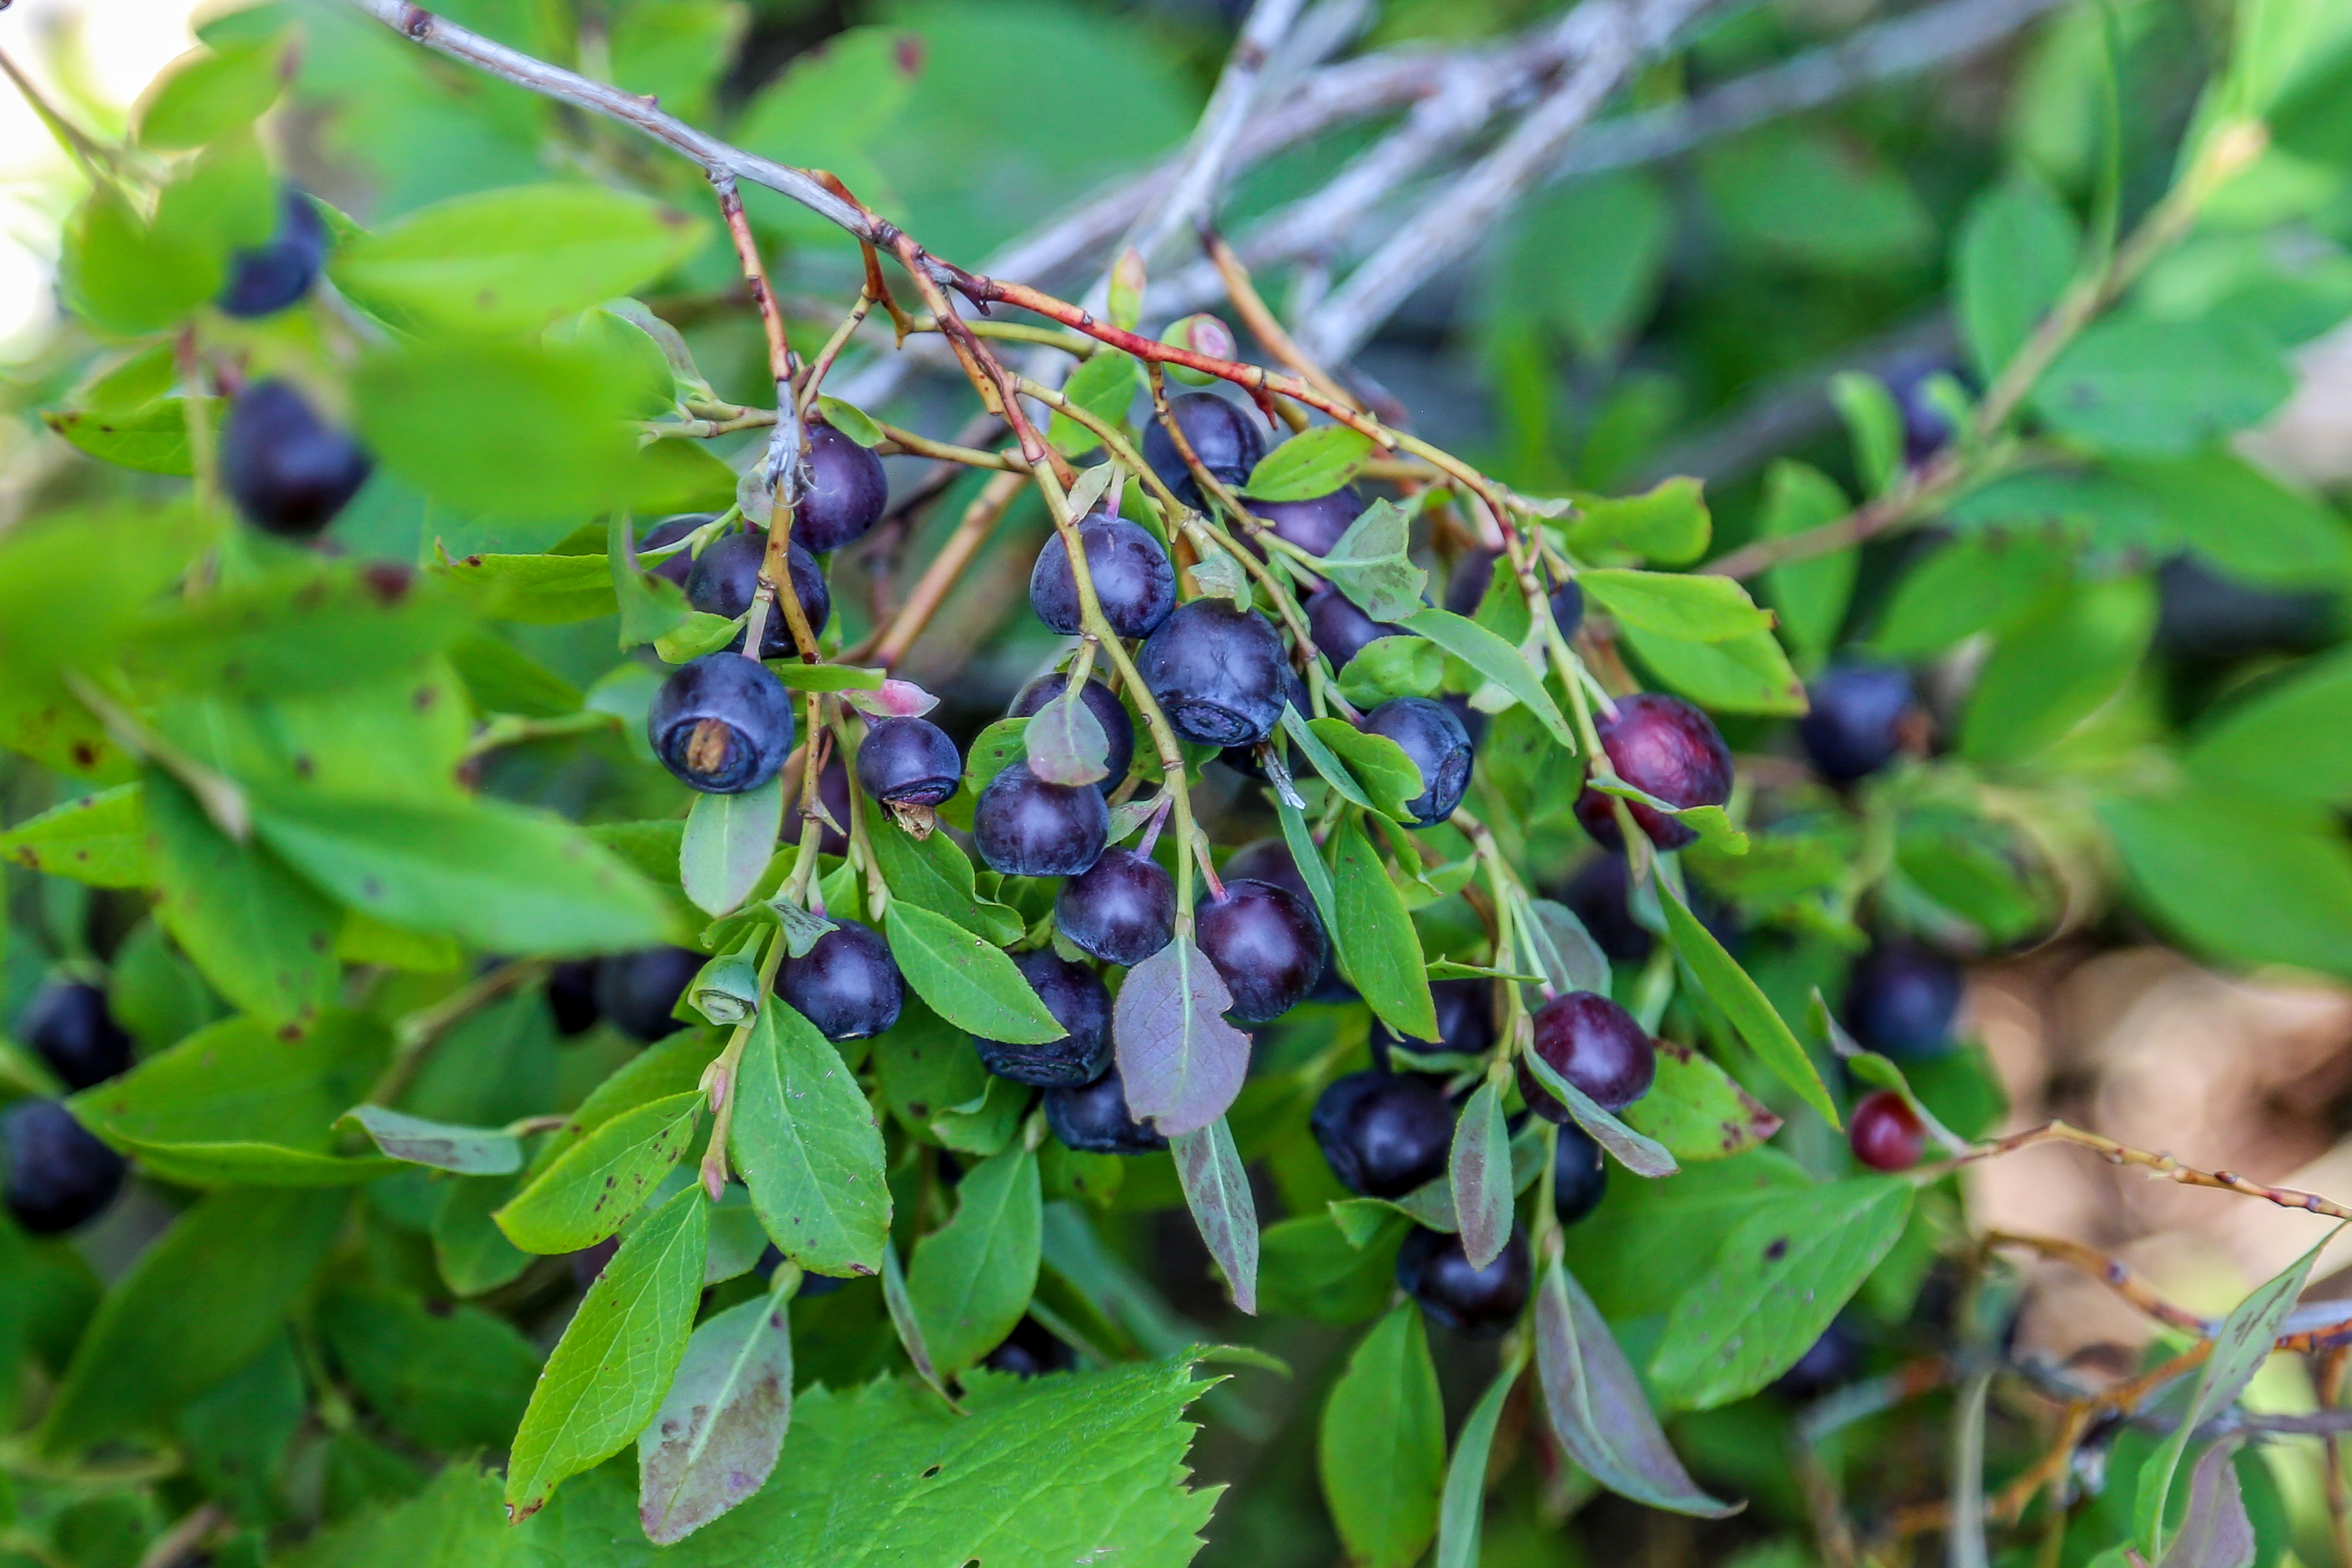 How To Identify Huckleberries What A Huckleberry Bush Looks Like Huckleberry Picking We Live A Lot